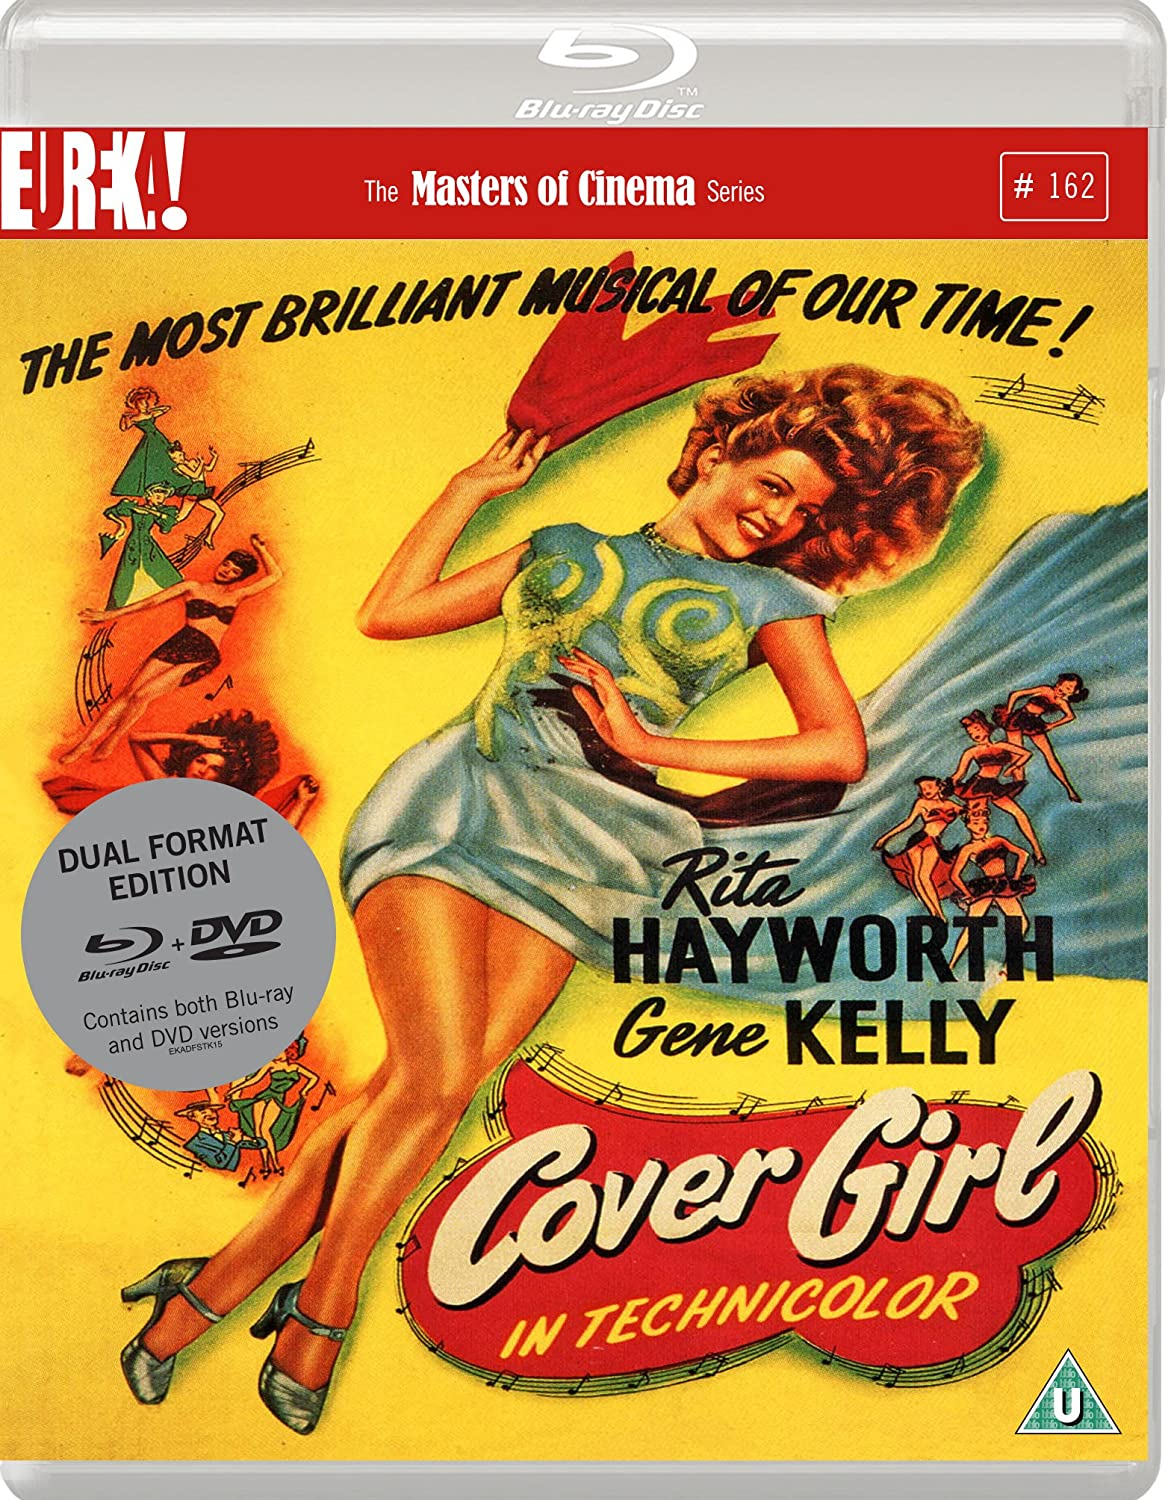 Cover Girl Masters Of CinemaDual Format